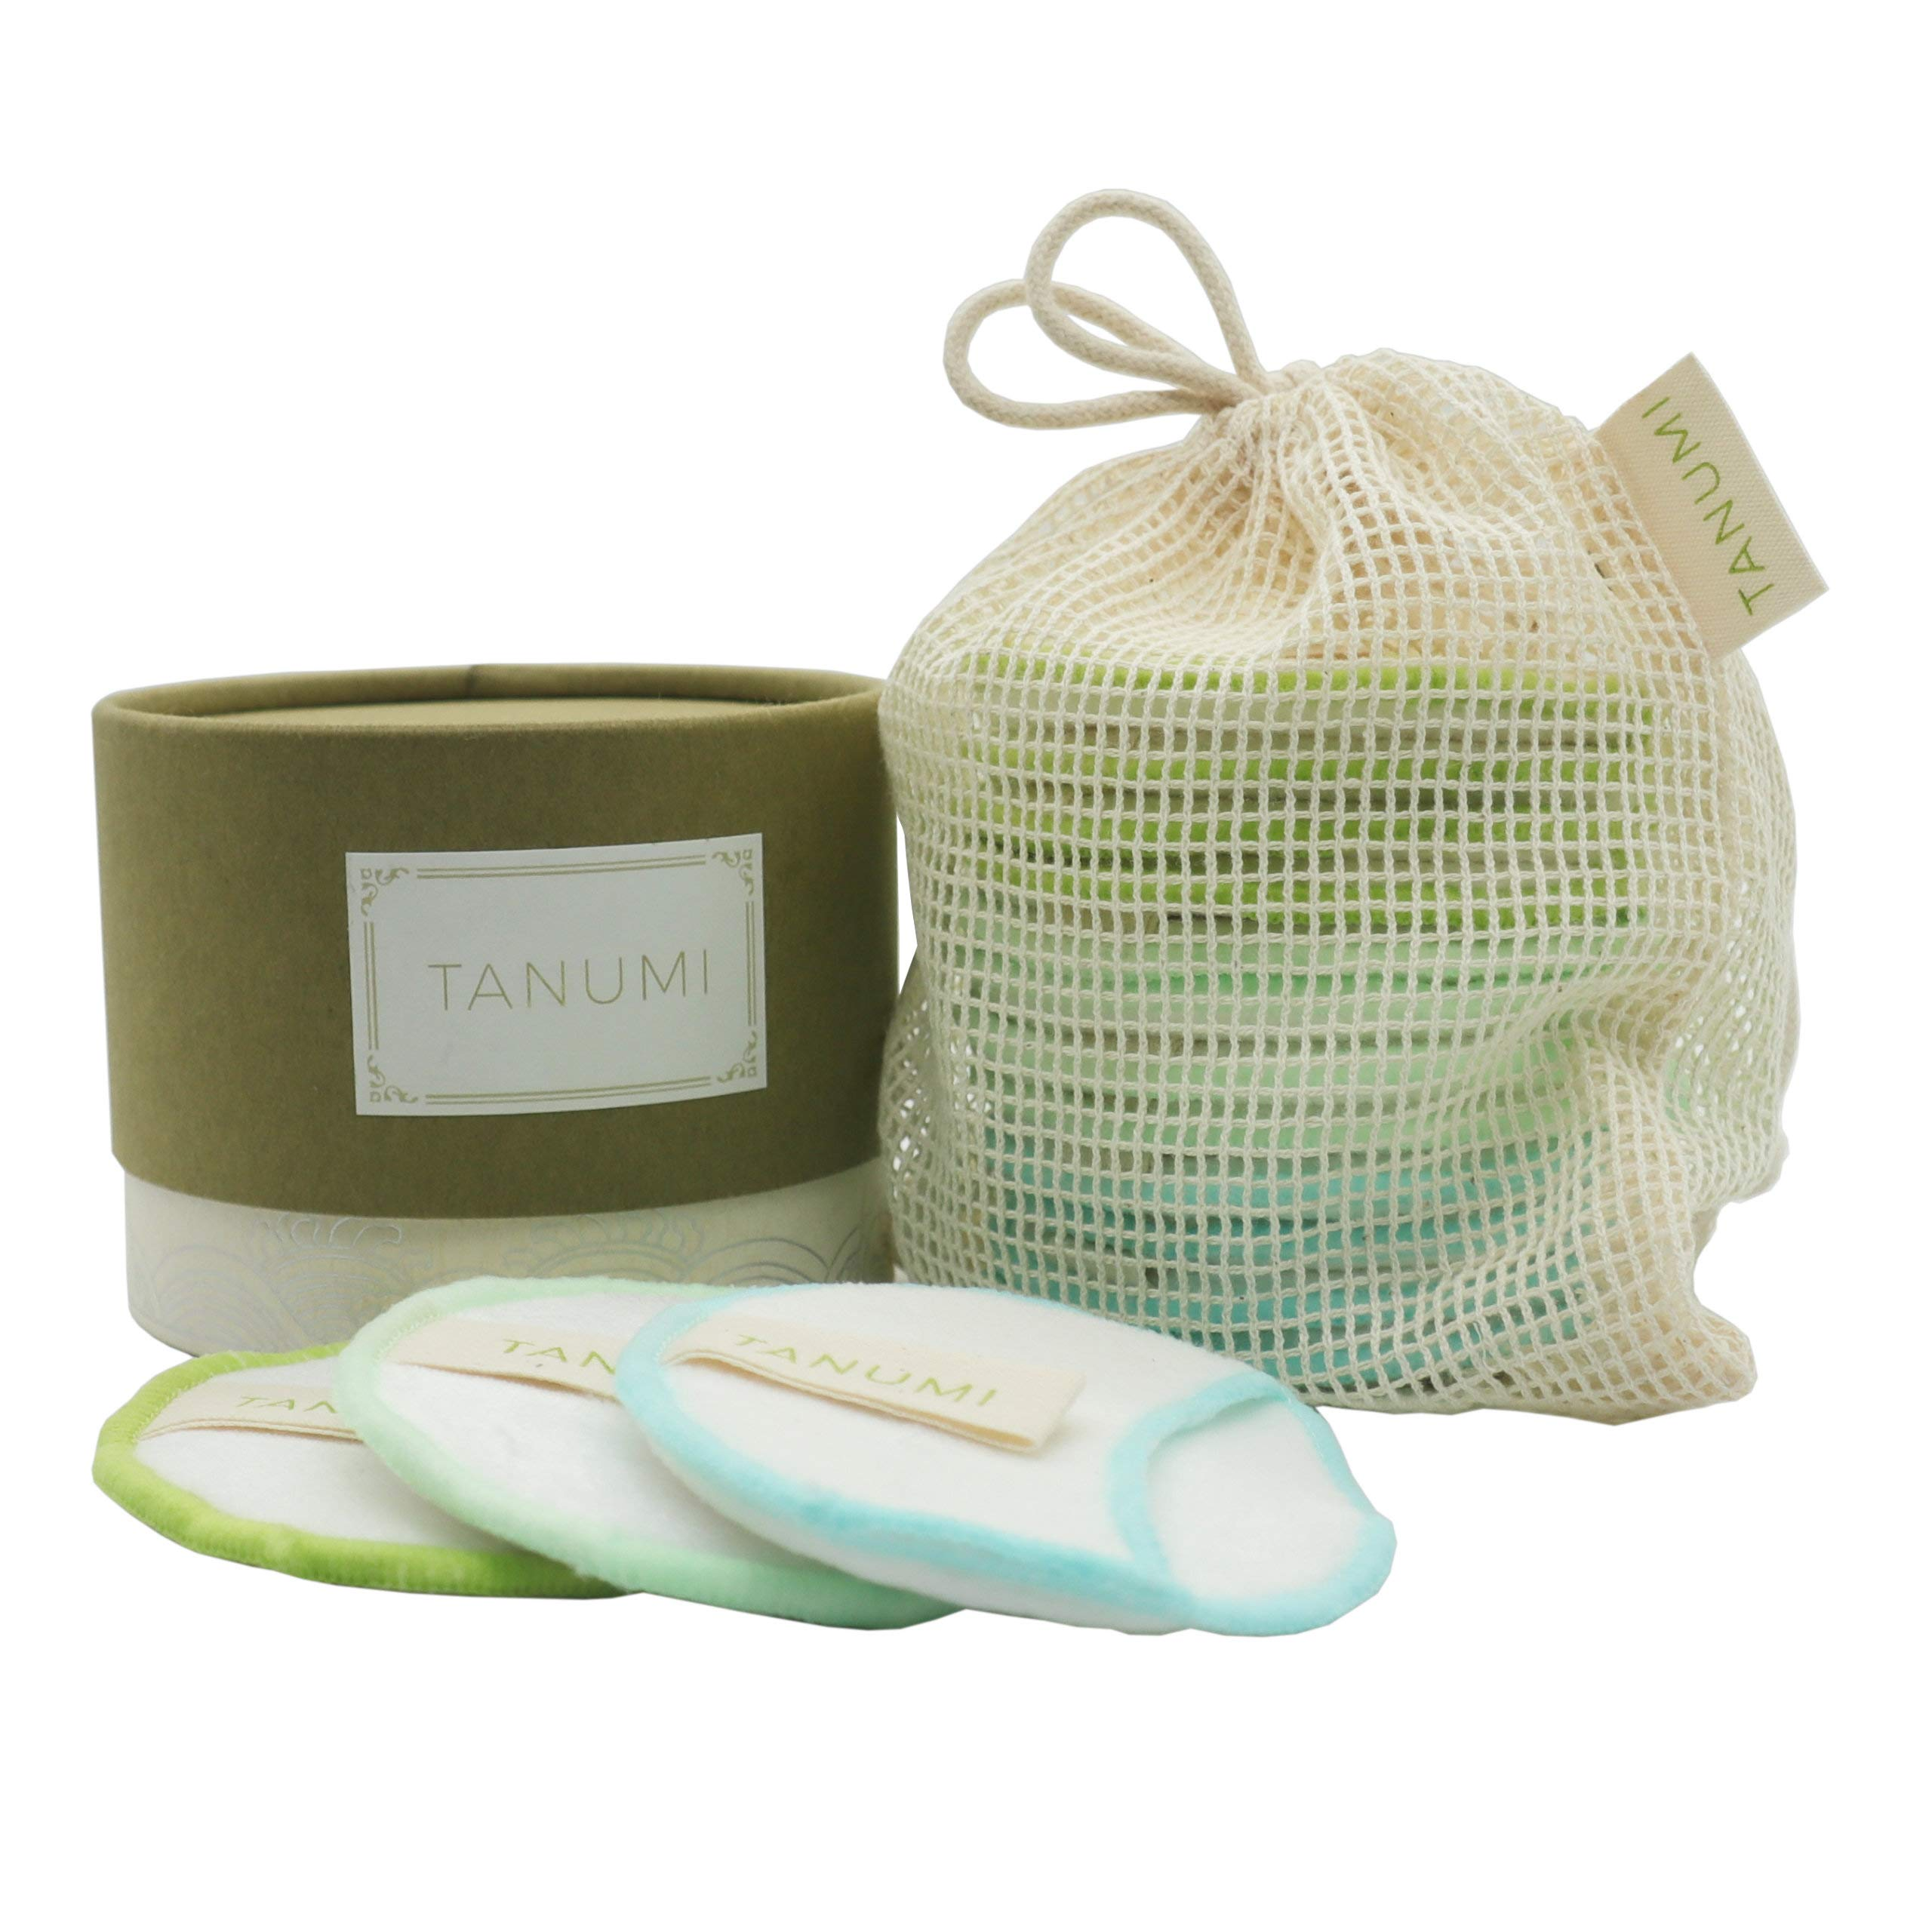 TANUMI Reusable Makeup Remover Cotton Pads | 12 Reusable Cotton Rounds/w Laundry Bag | Perfect Gift For Her| Skin Care Cleansing Round Remover Wipes by TANUMI